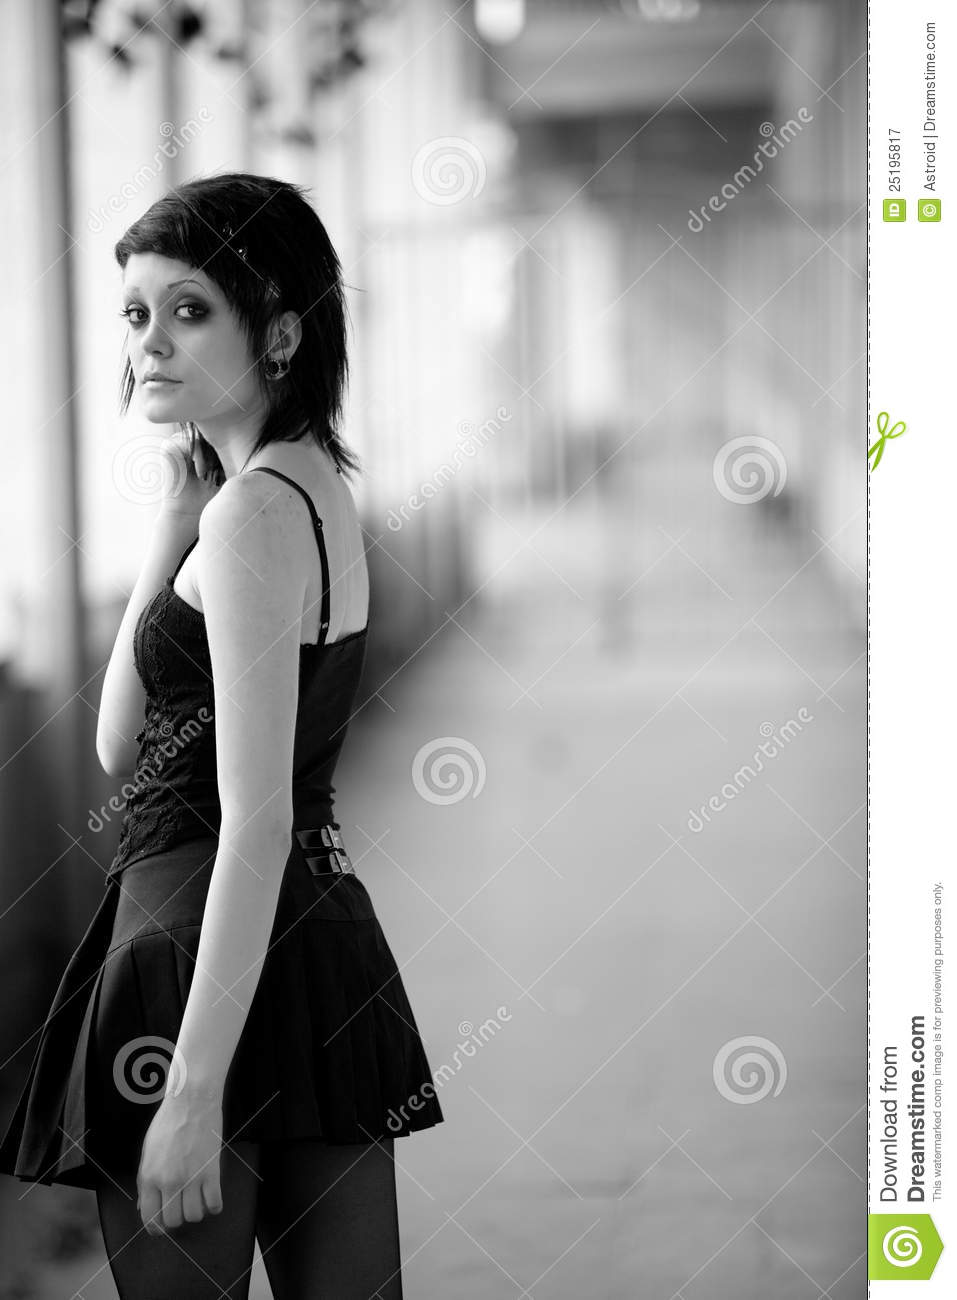 Young Gothic Girl Royalty Free Stock Photography Image